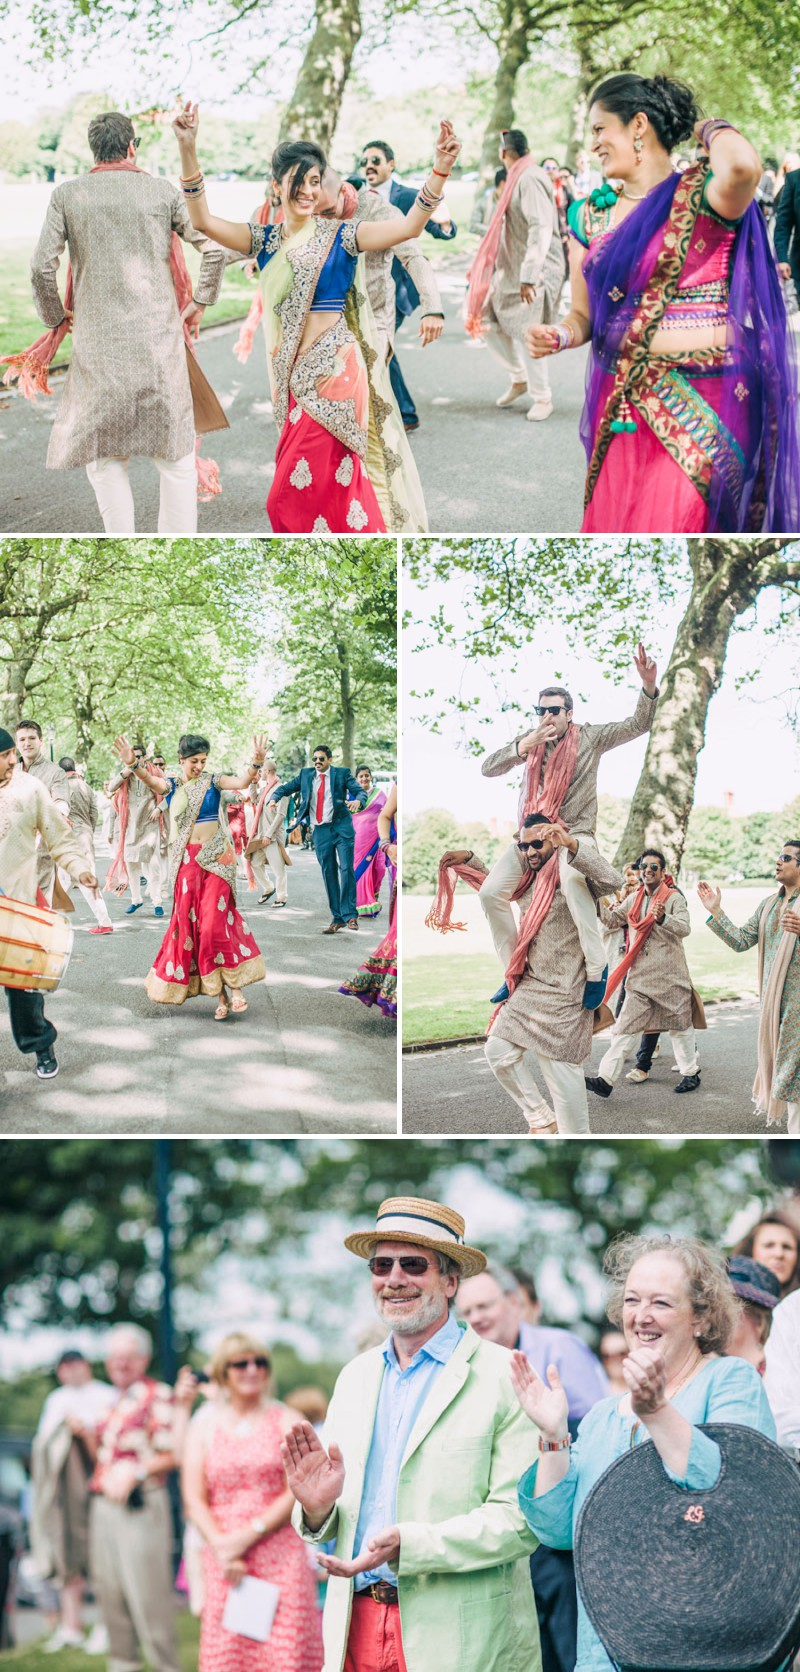 An Exotic Indian and English Fusion Wedding At Sefton Park Palm House In Liverpool With A Beautiful Vintage Lagonda And A Pink Handpicked Bouquet By Wookie Photography. 0001 An Exotic Palm House Party.